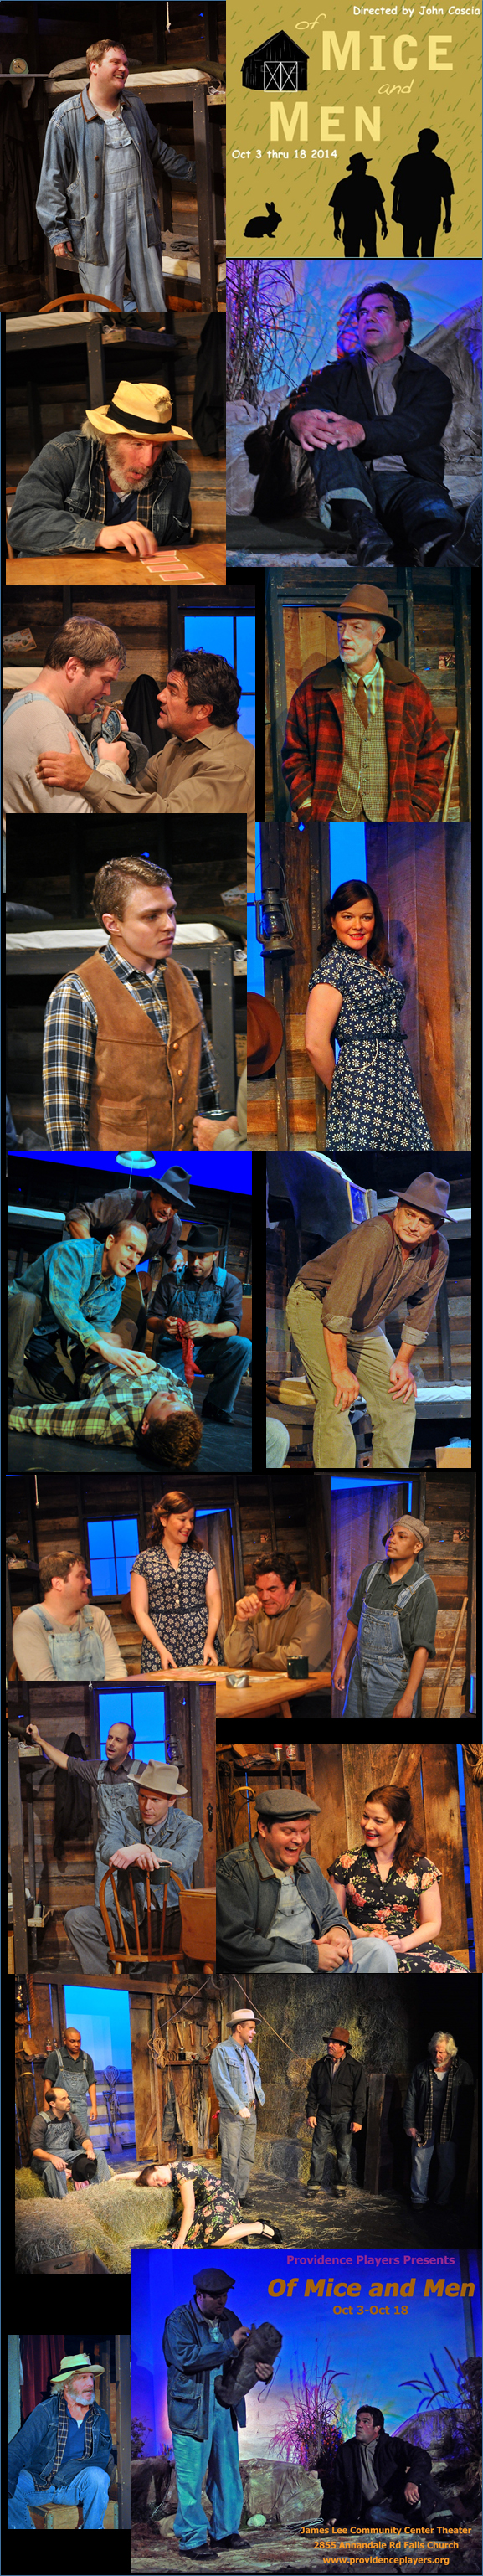 PPF Of Mice and Men Montage Photos by Chip Gertzog